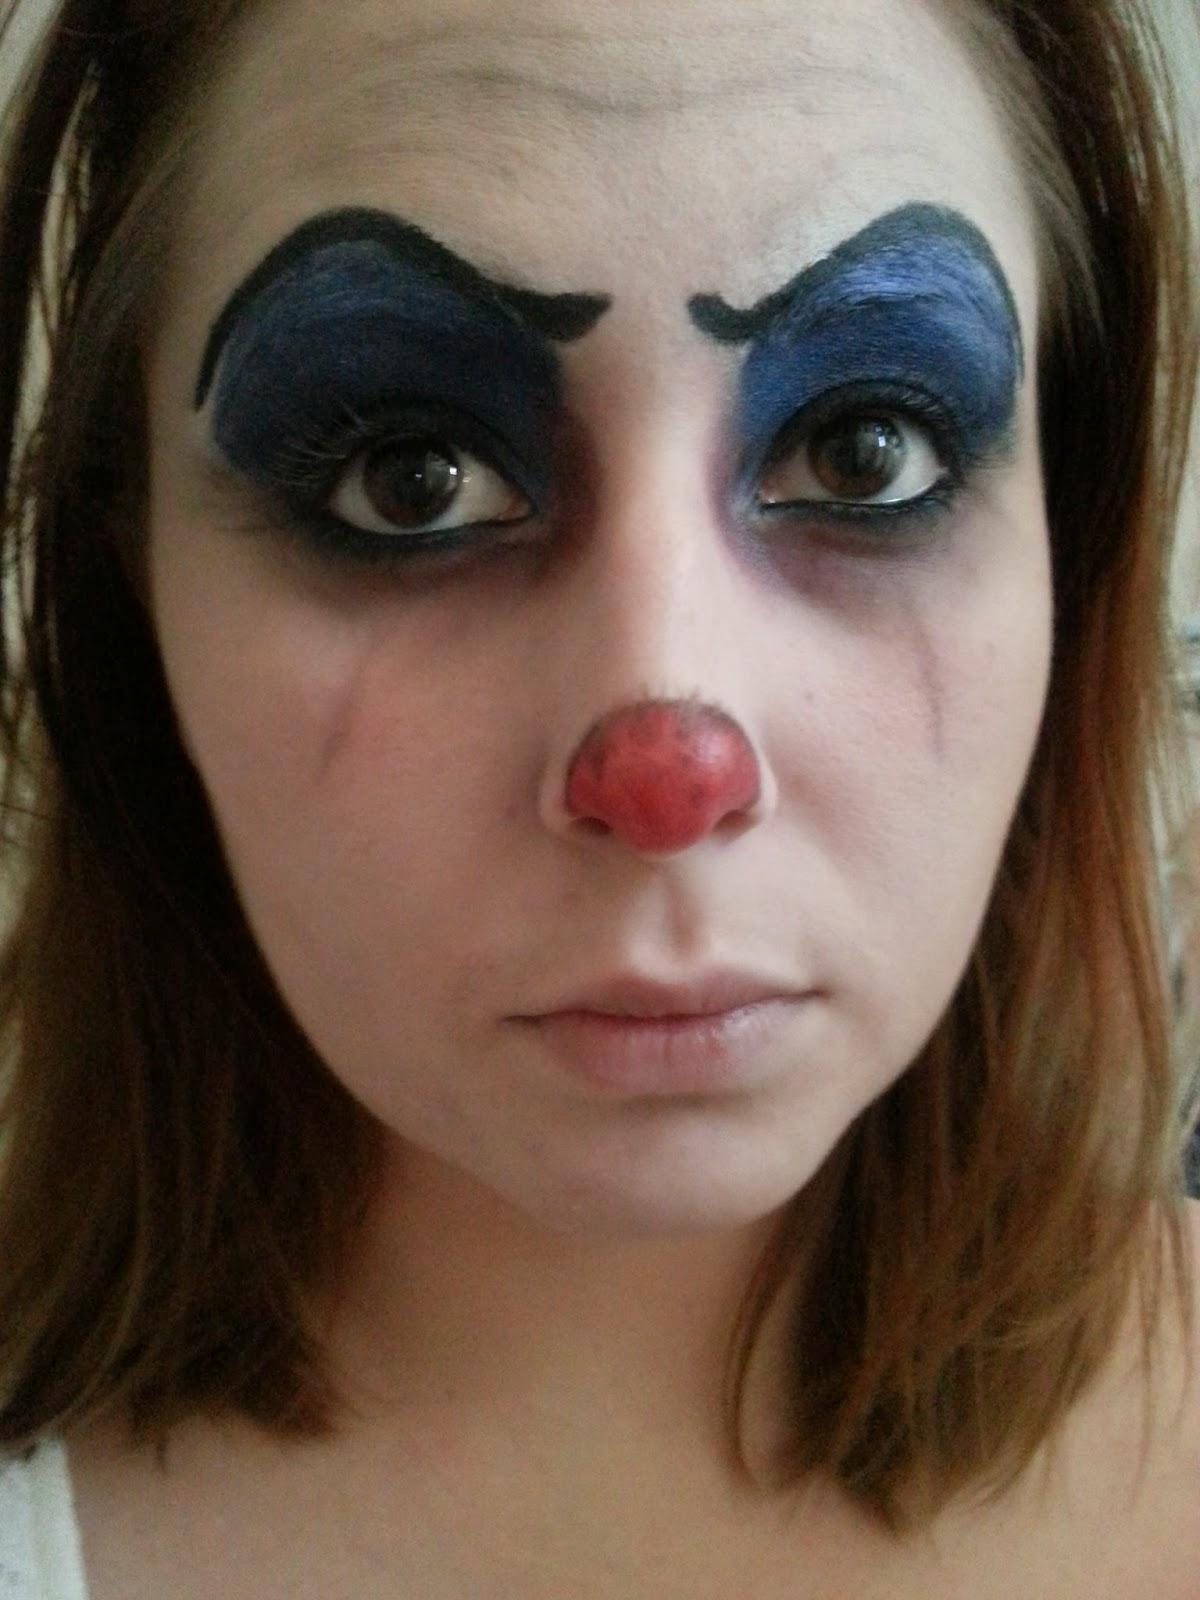 Maquillage d'Hallowen : Clown Diabolique, Sugar Skull, Vieille Sorcière